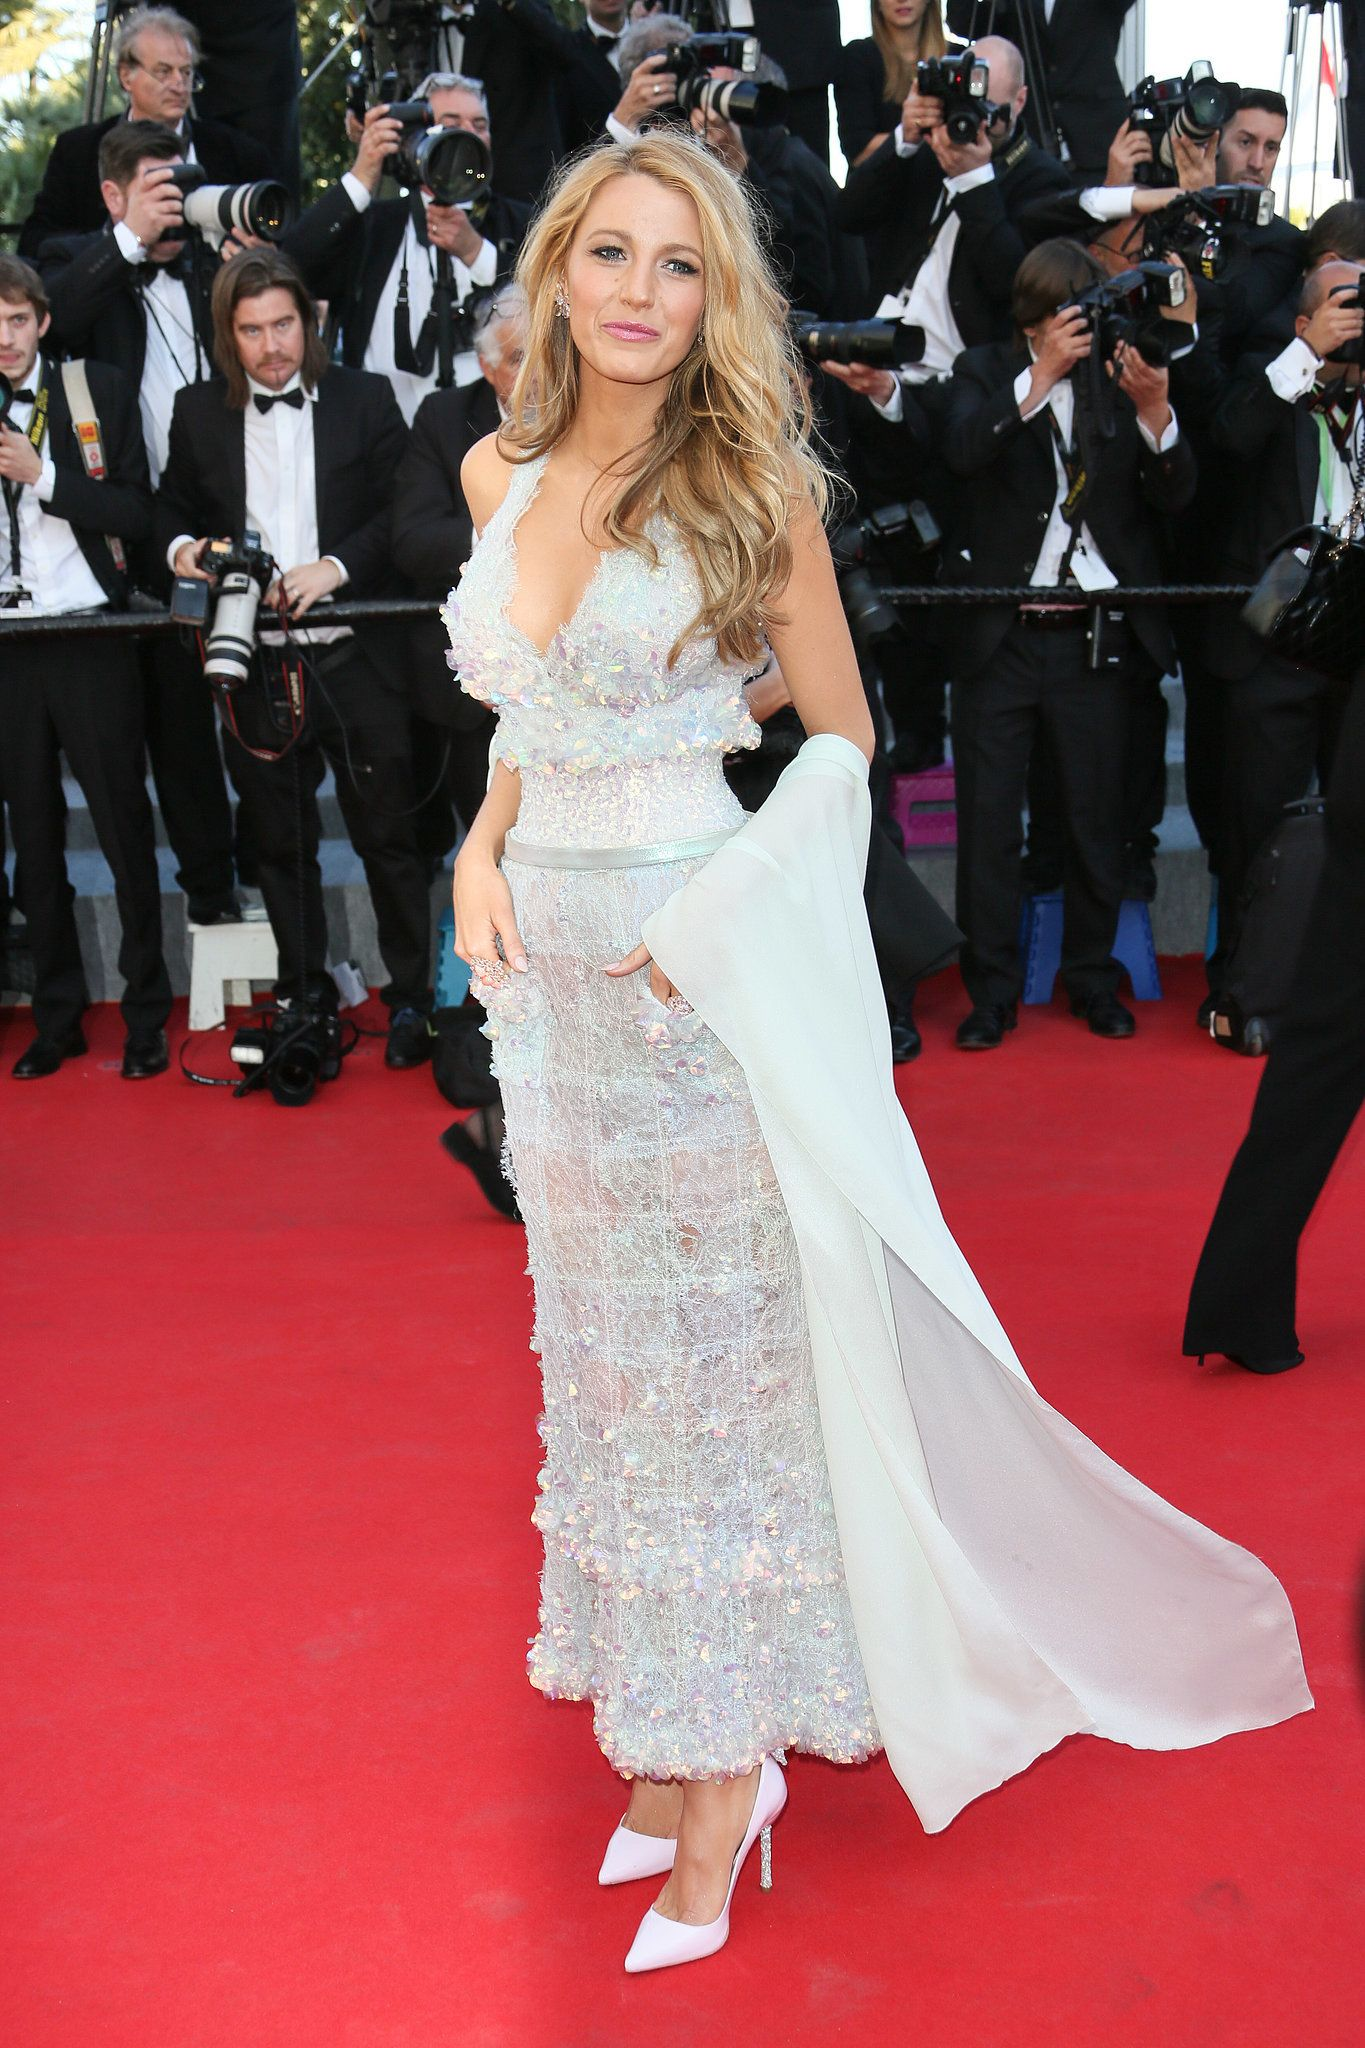 Blake Lively in Chanel Couture at Cannes.